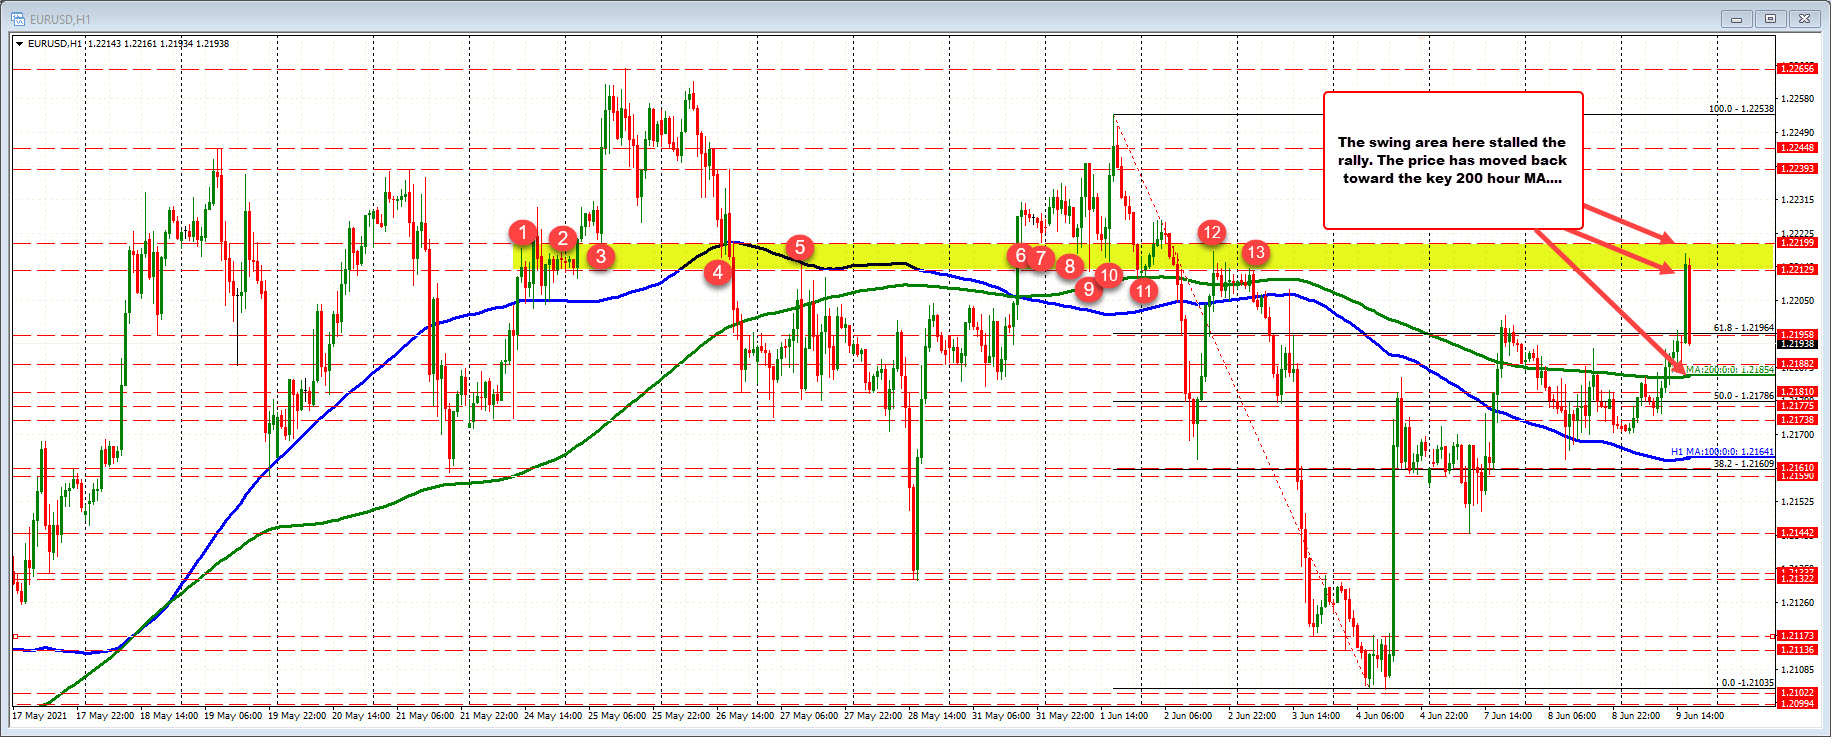 200 hour MA at 1.21854 has to hold if the buyers are to keep some control